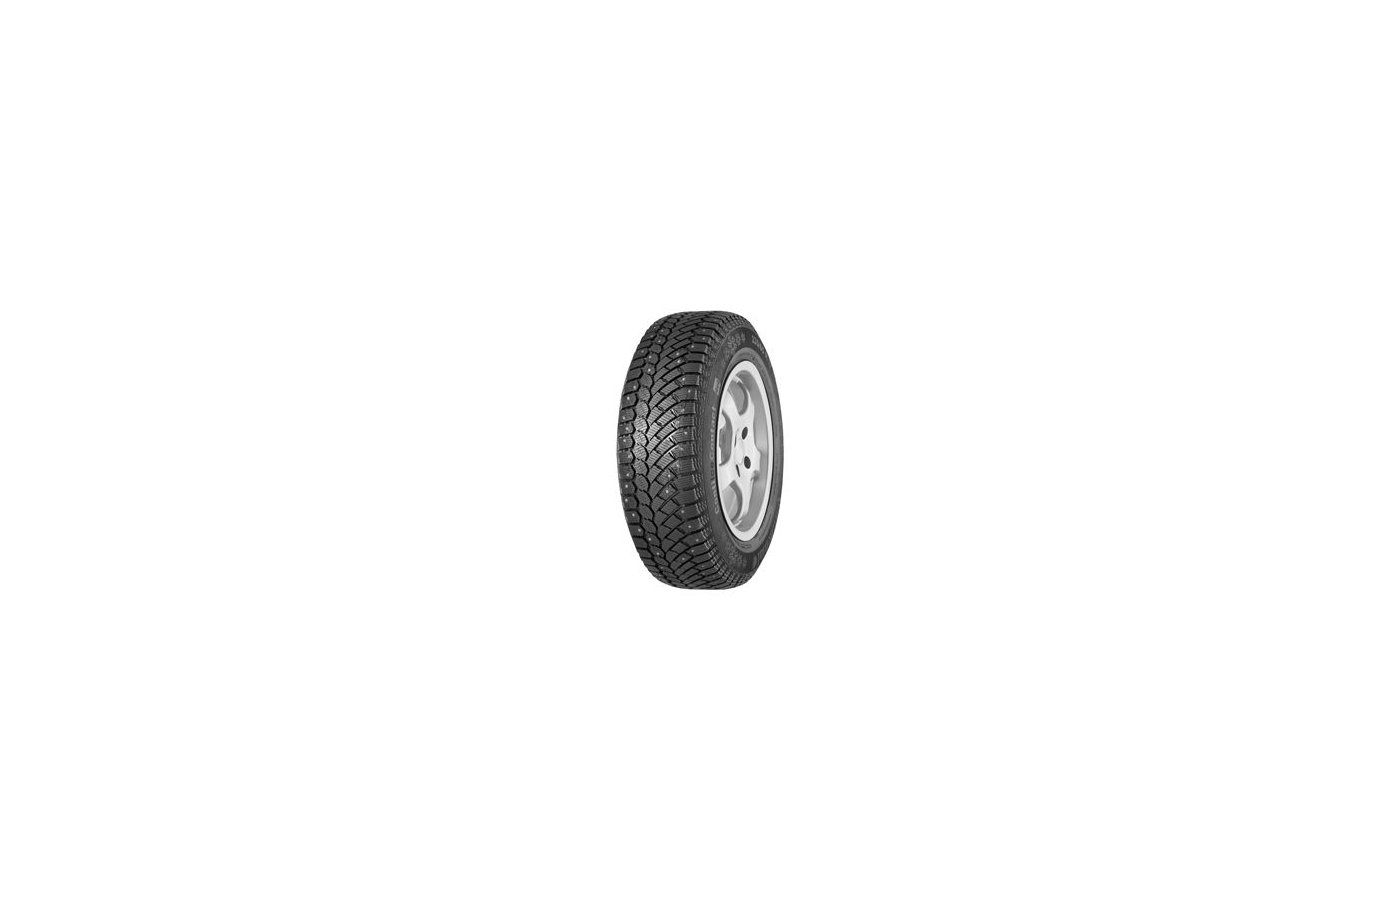 Шина Continental ContiIceContact 205/65 R15 TL 99T XL шип